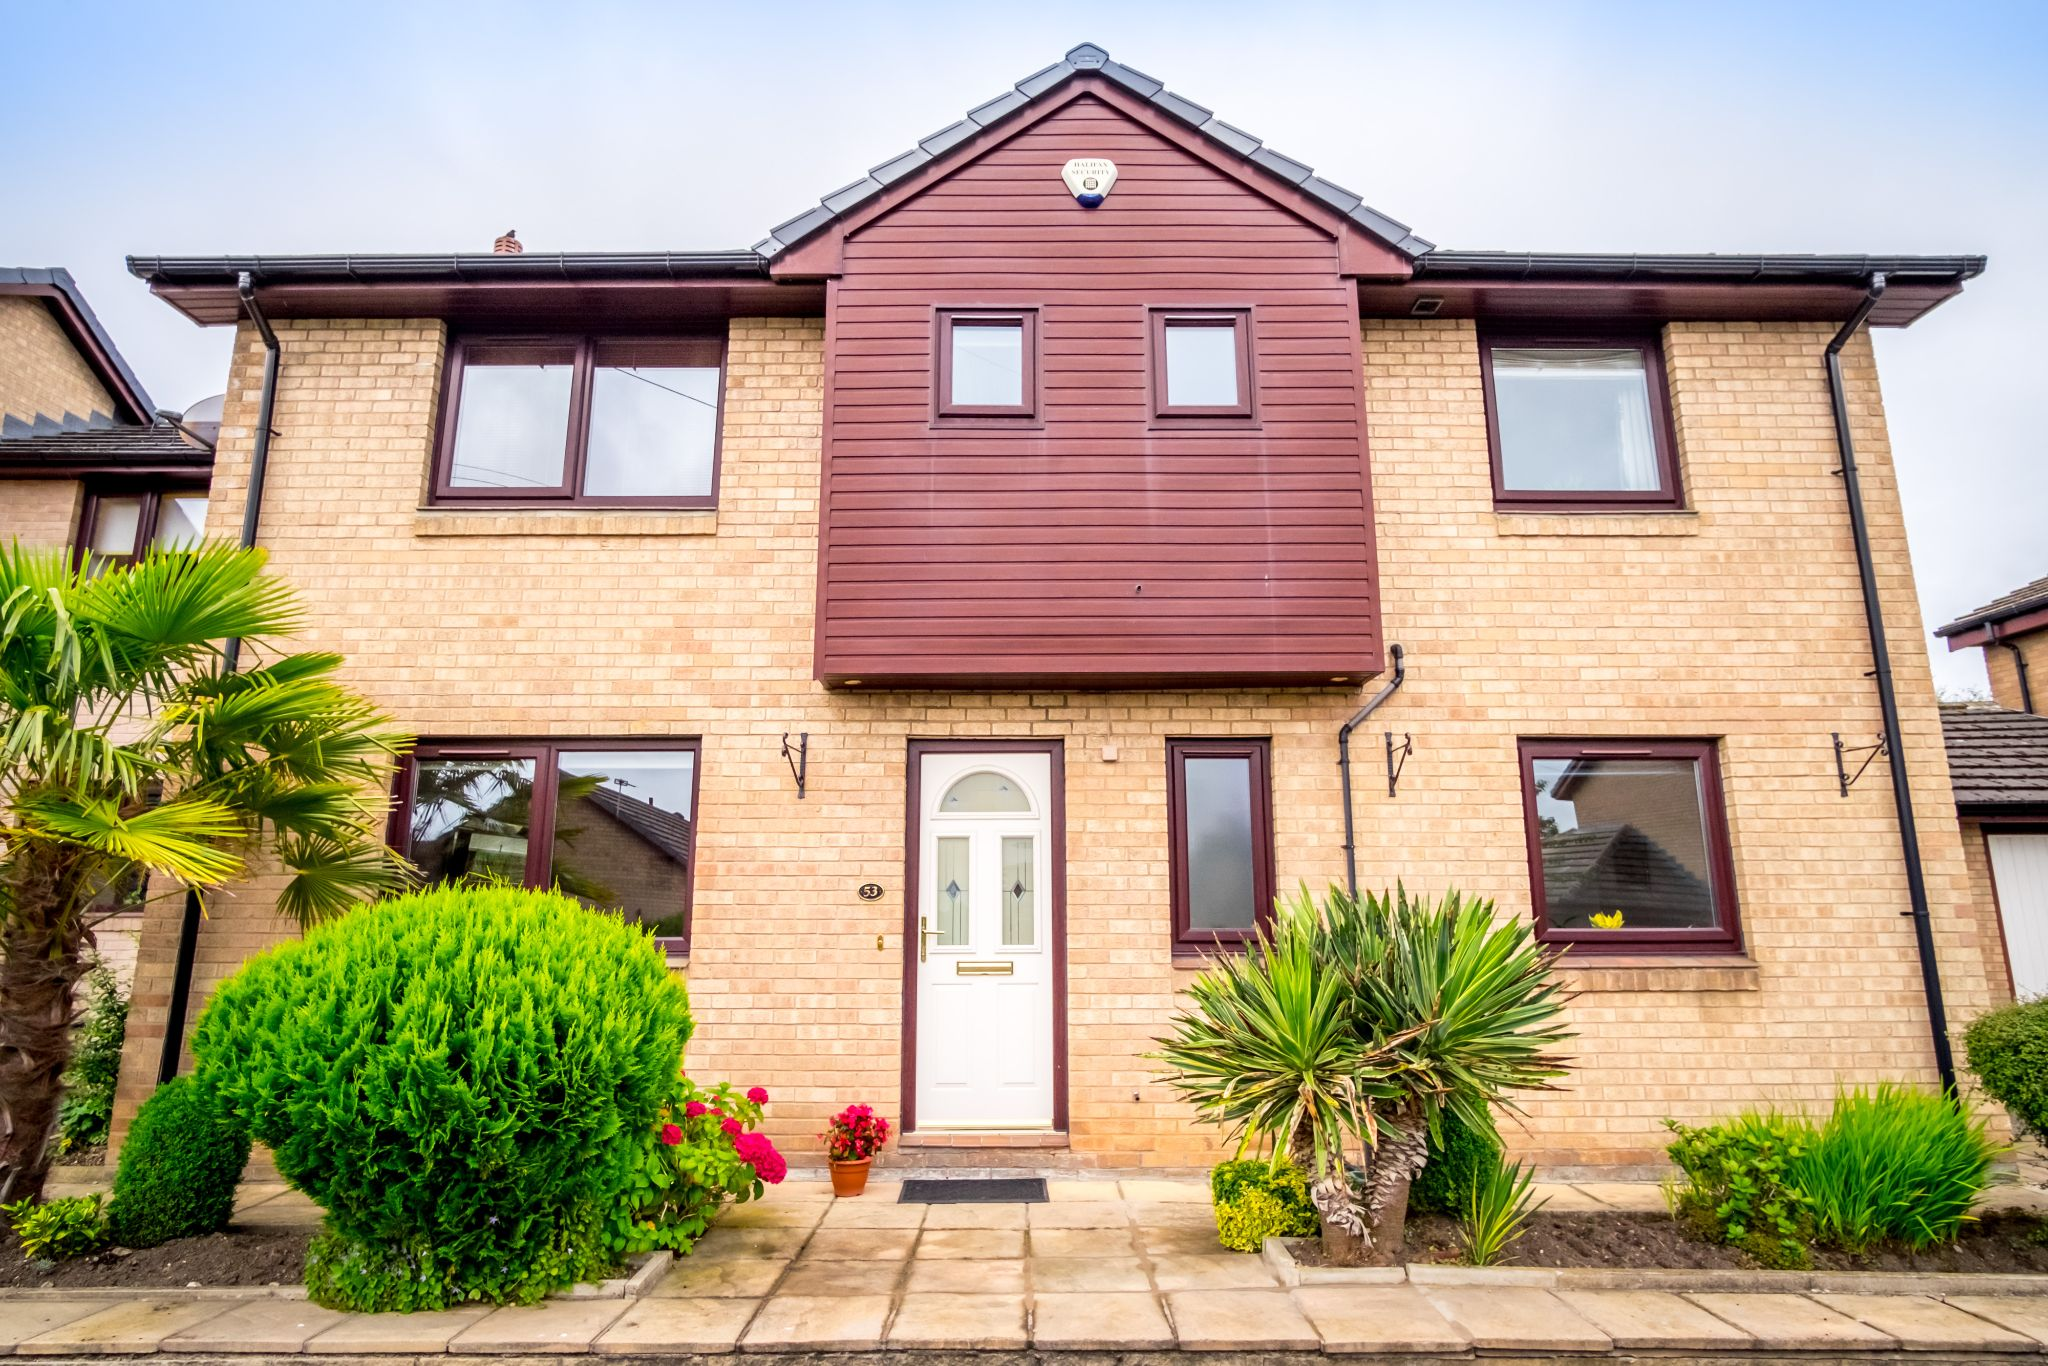 4 bedroom detached house For Sale in Brighouse - Front elevation